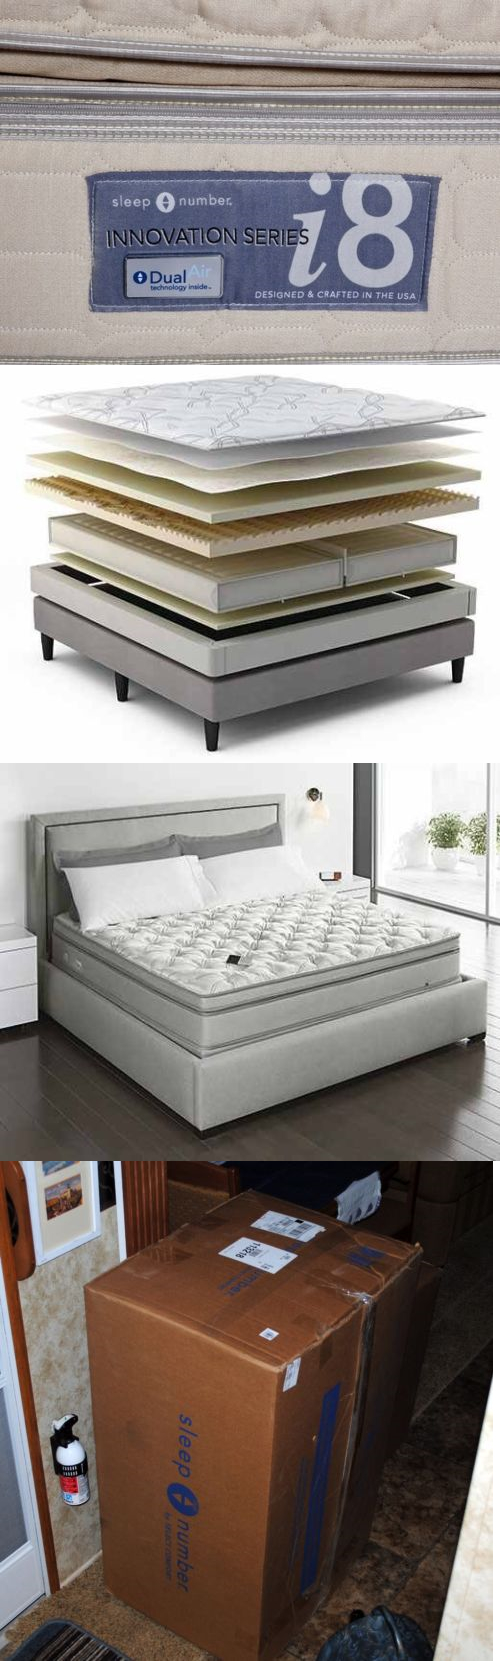 inflatable mattresses airbeds 131598 sleep number i8 king mattress